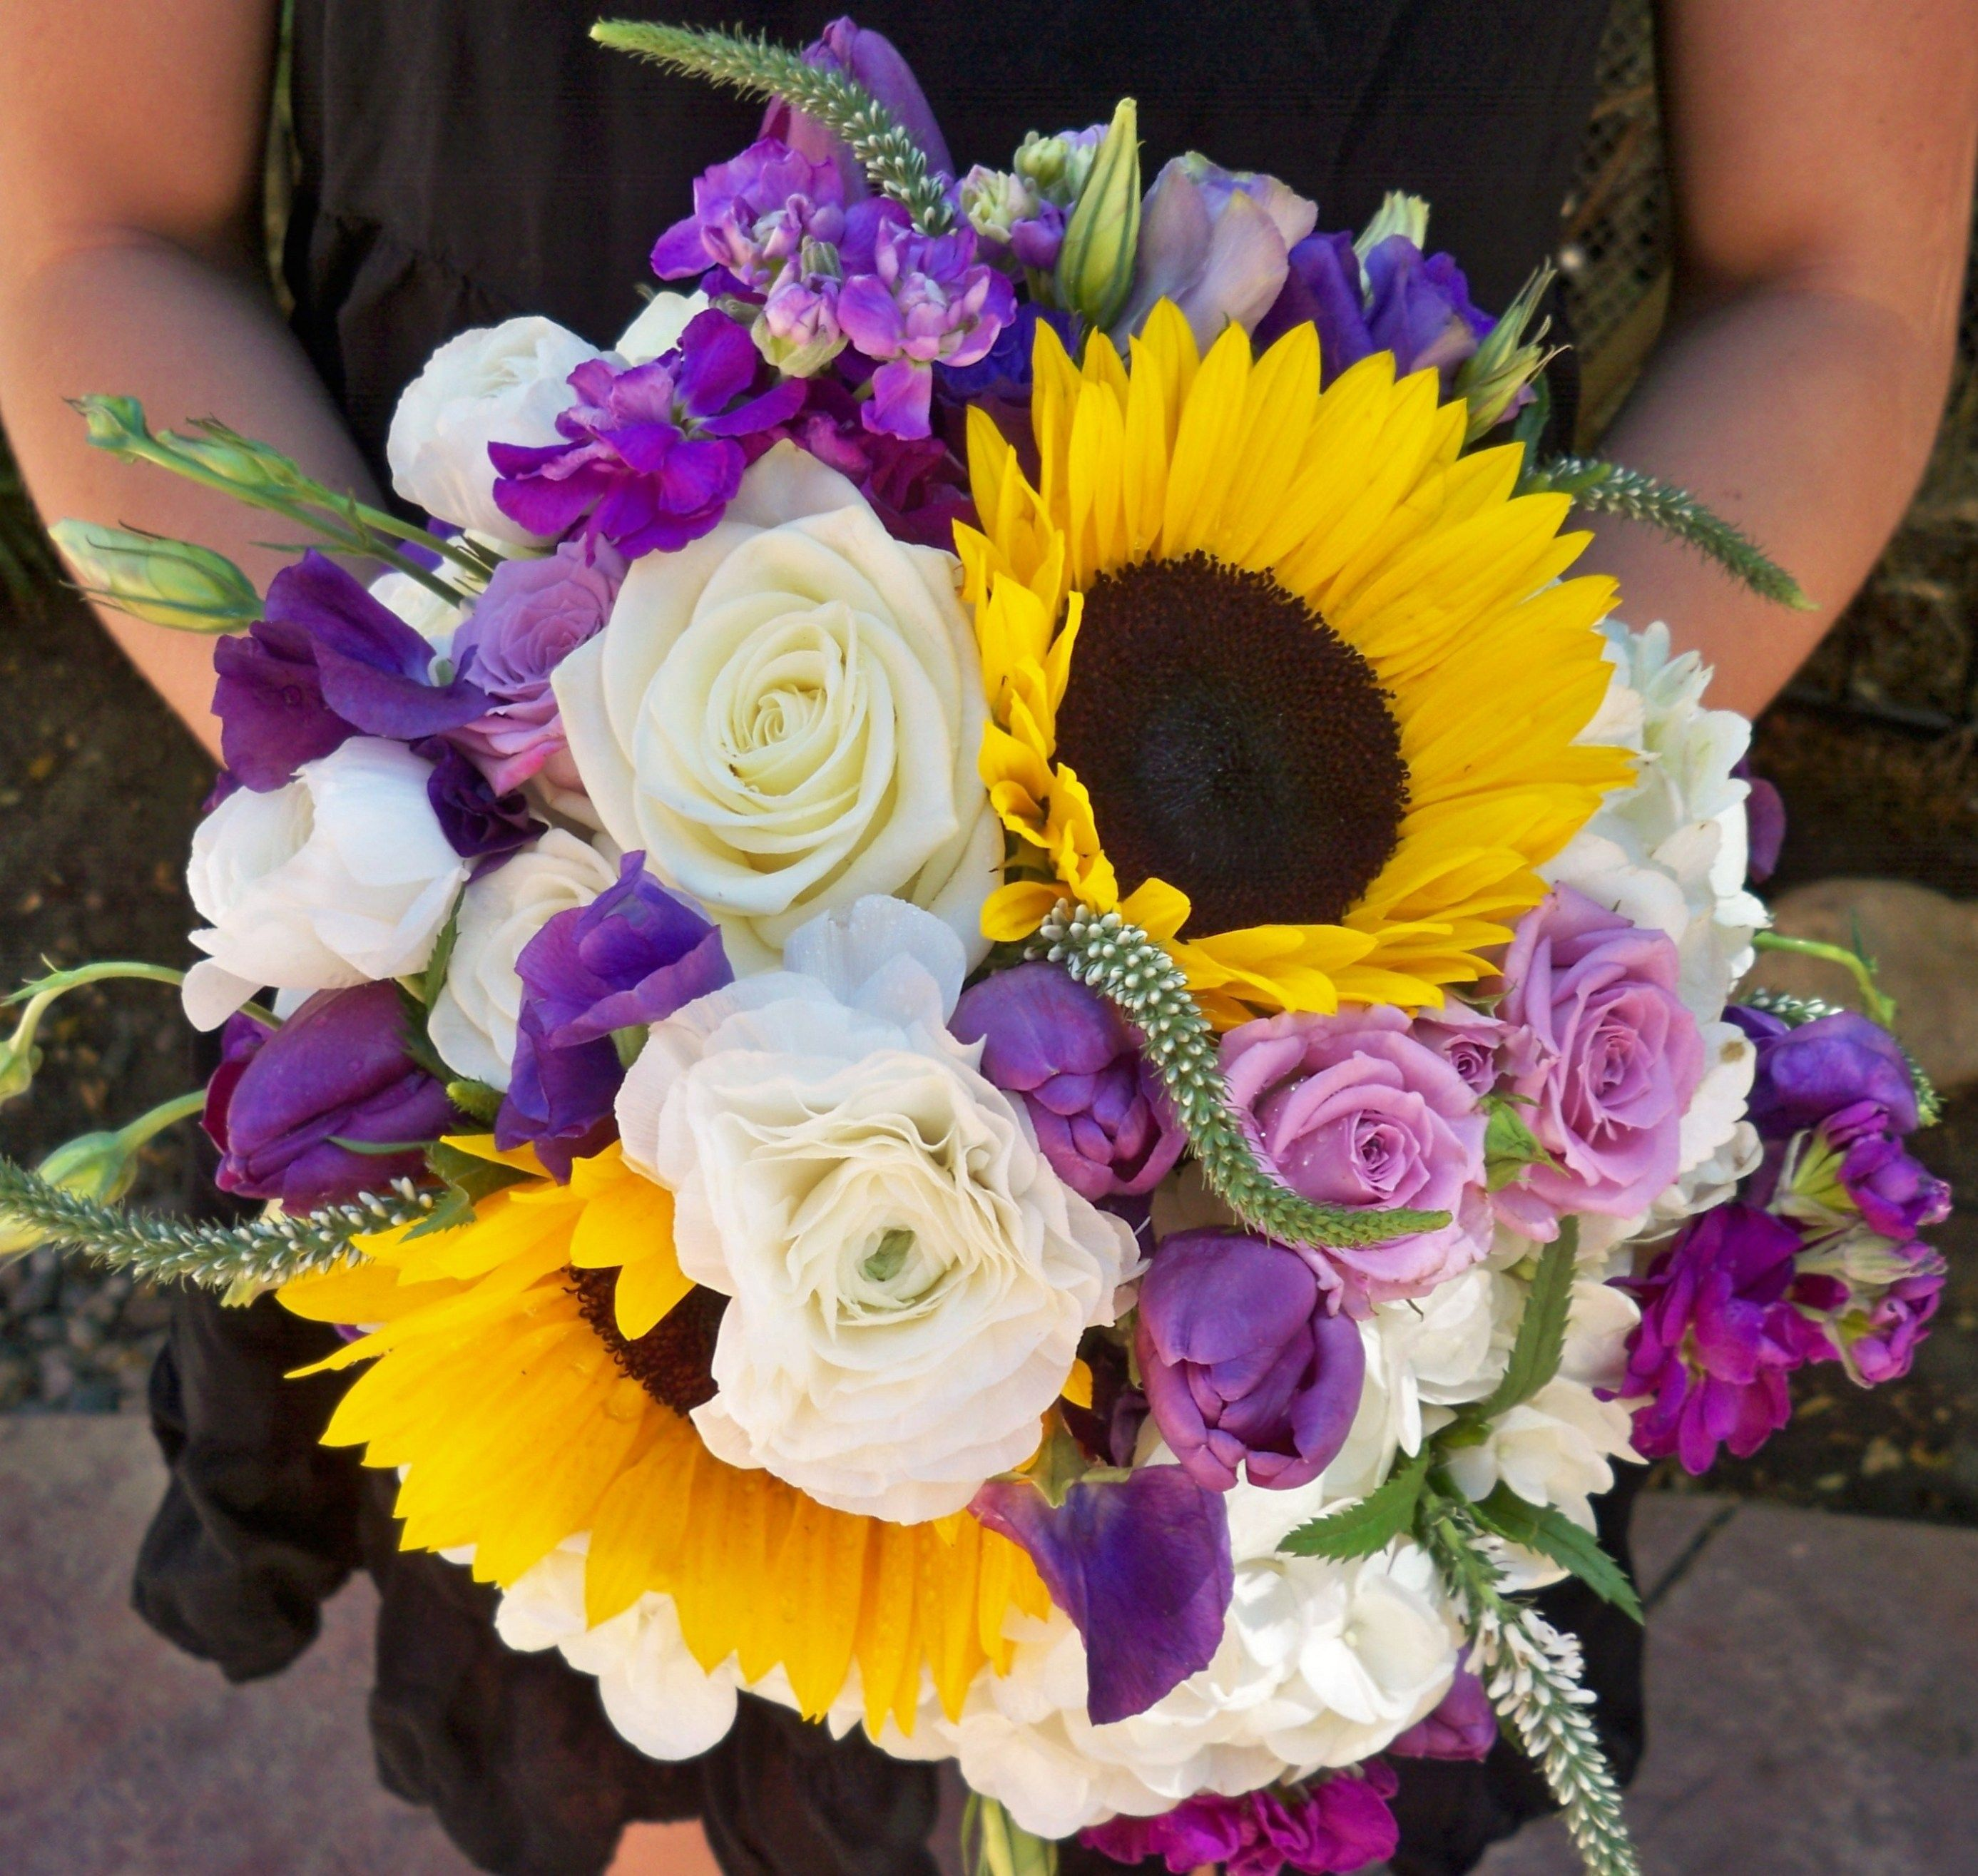 99 Great Roses And Sunflowers For Wedding With Images Purple